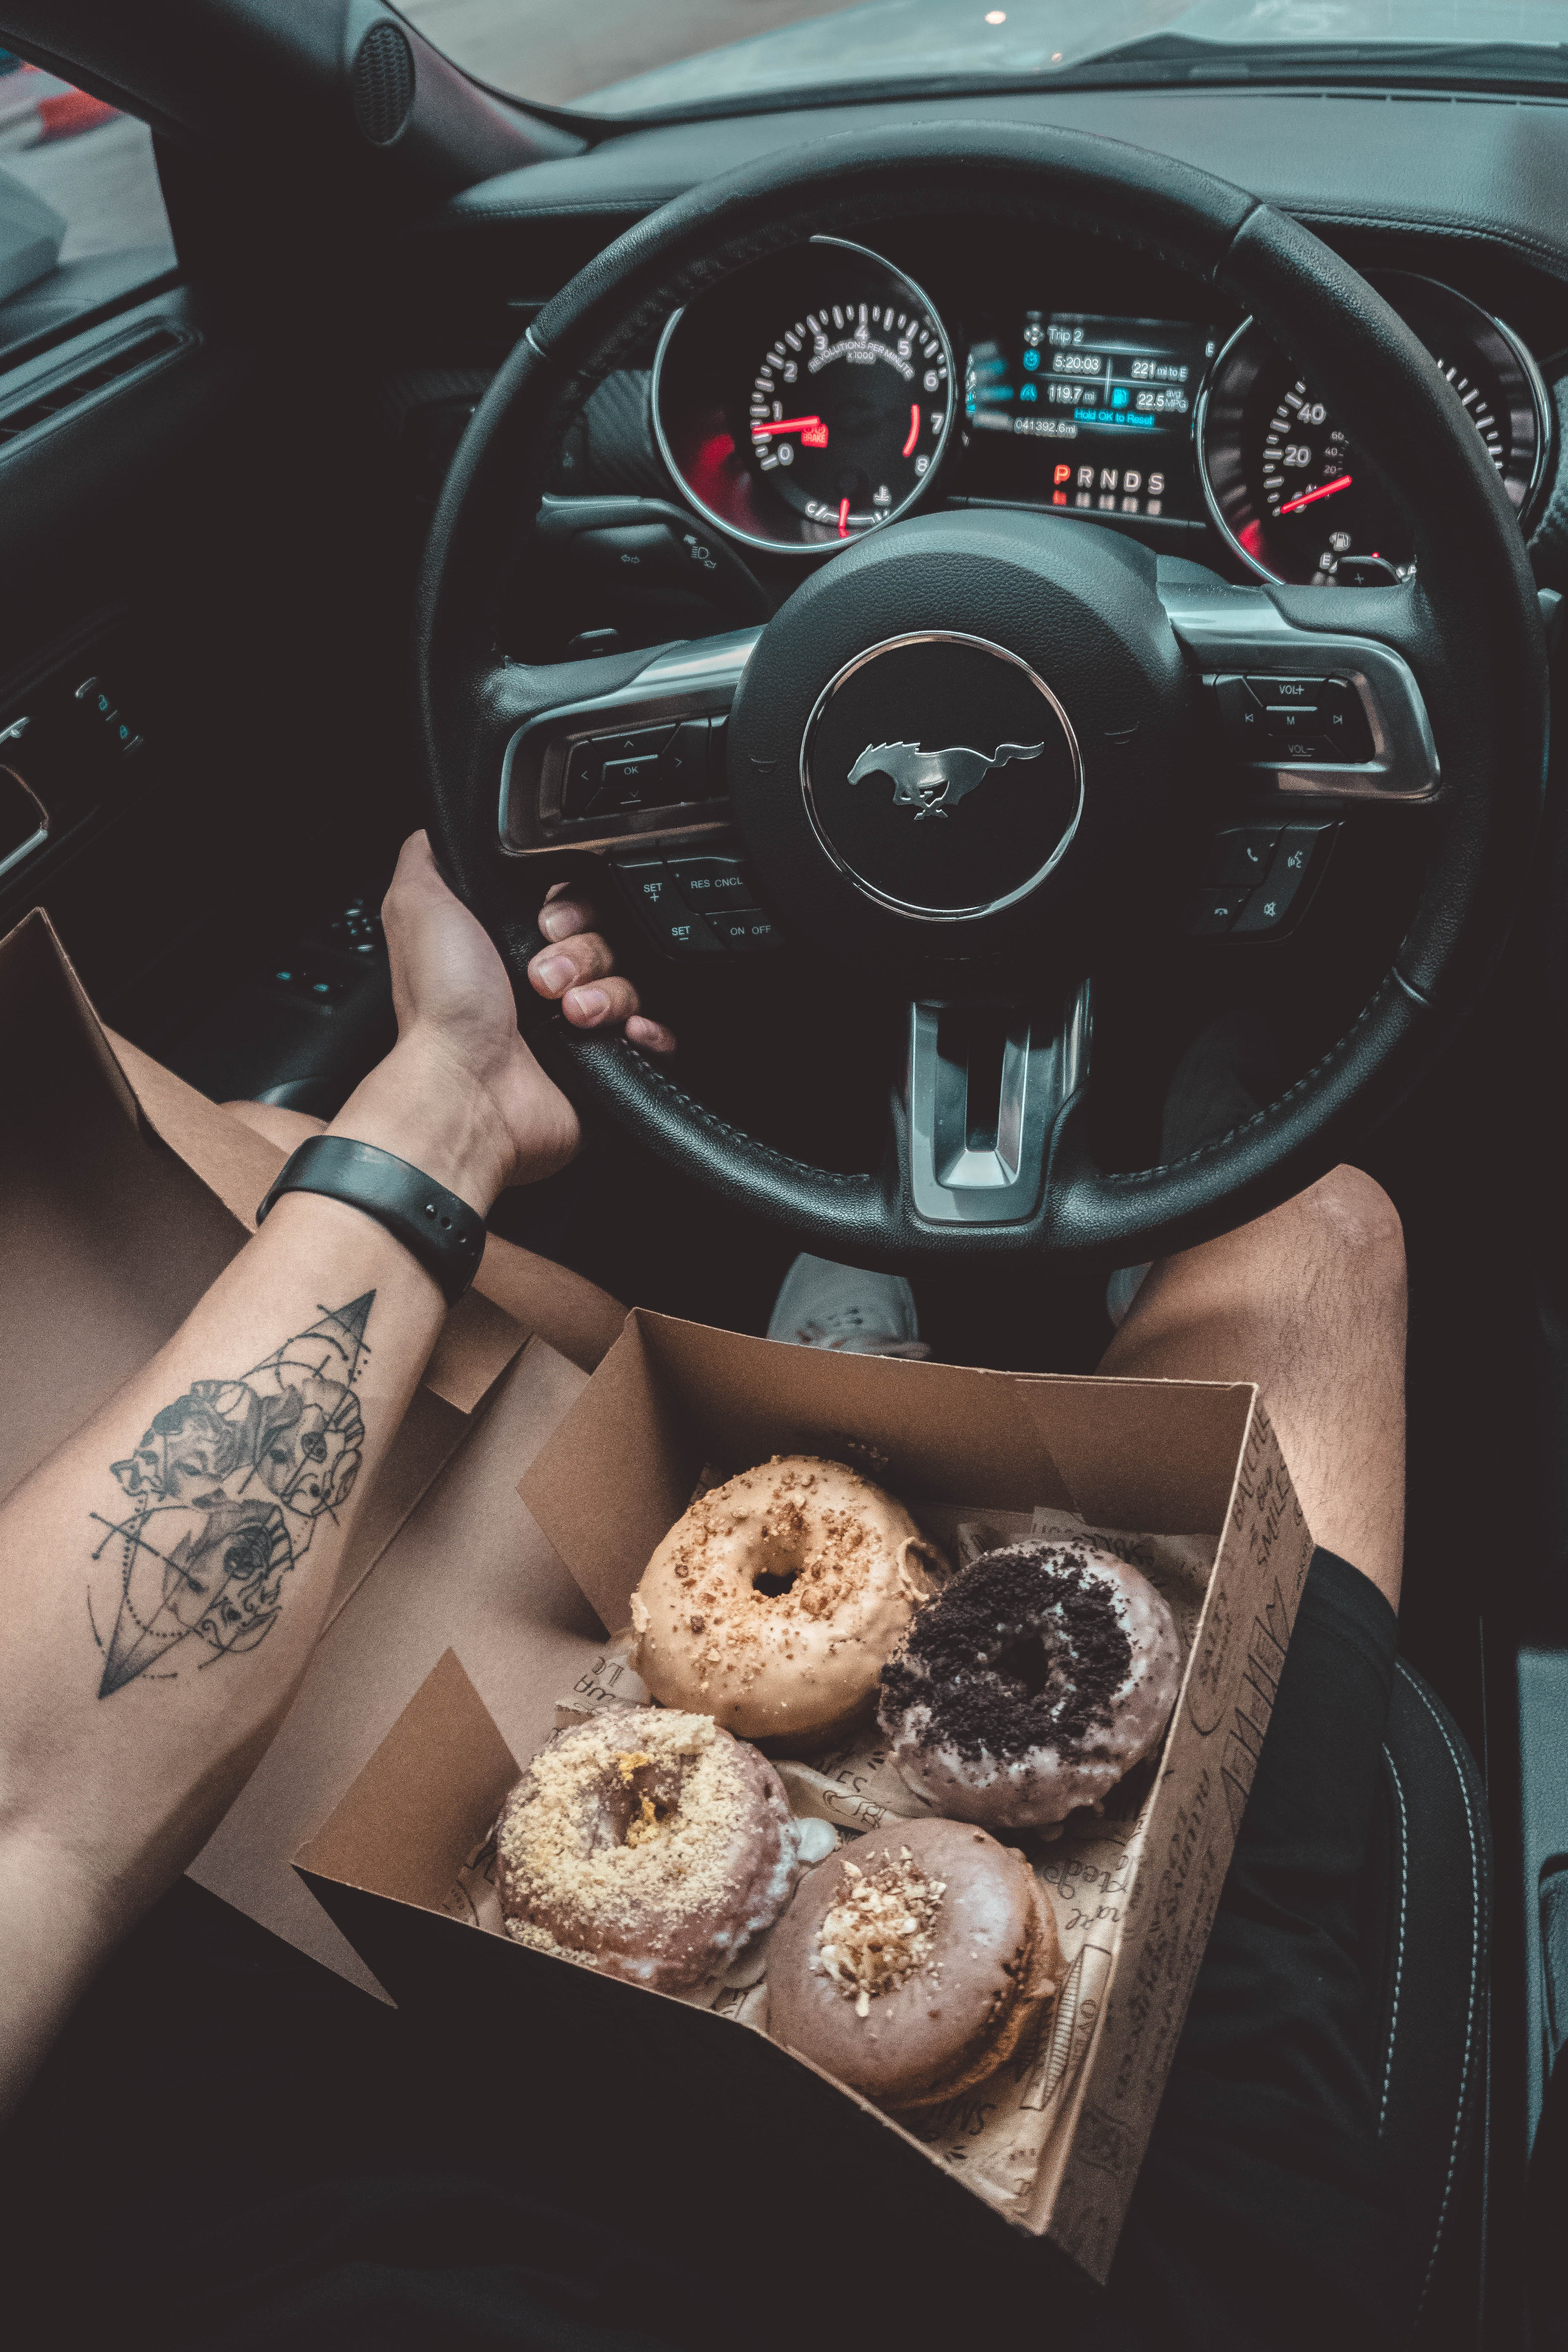 126328 download wallpaper Cars, Hand, Car, Machine, Tattoo, Steering Wheel, Rudder, Donuts screensavers and pictures for free